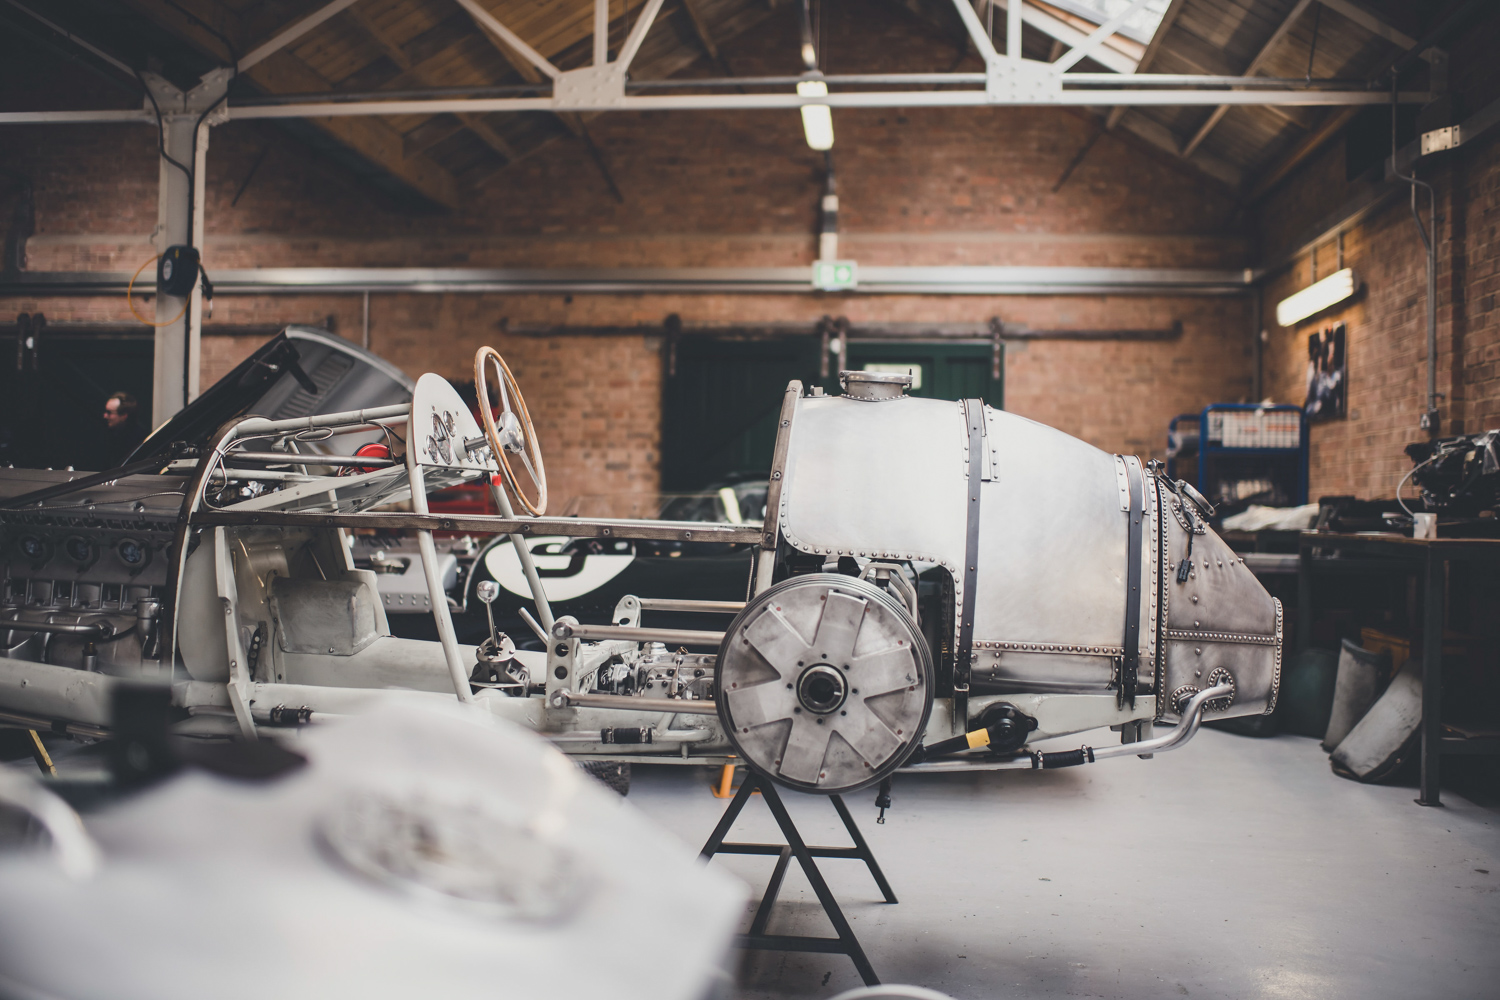 In 2013, the British government handed a bucket of keys to Bicester's new operators and walked away. Some 35 companies now occupy the restored airbase workshops, including specialists who restore anything from a D-type Jag to a single-seater Maserati.